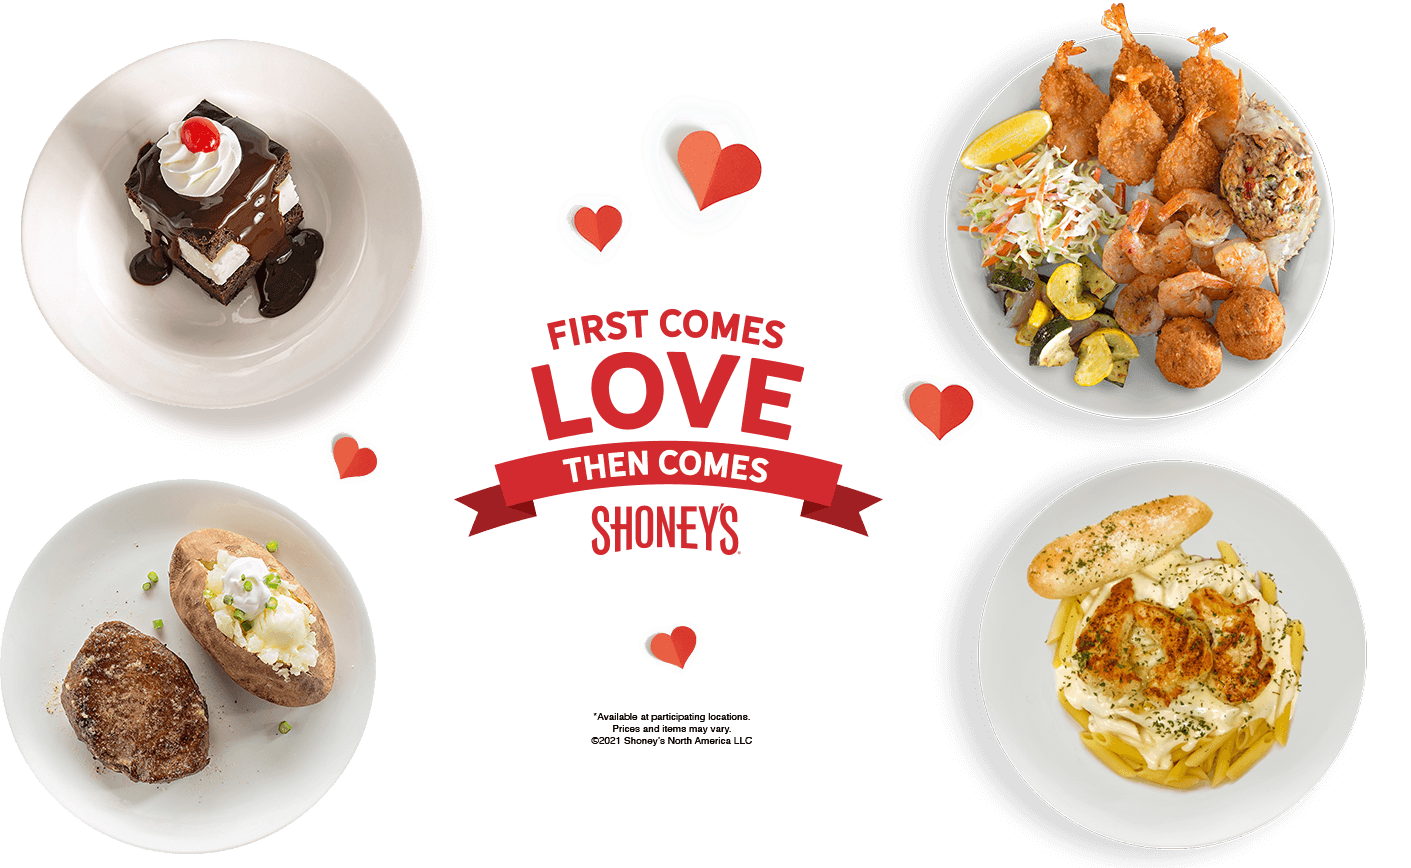 First Comes Love Then Comes Shoney's. Two can dine for $24.99.